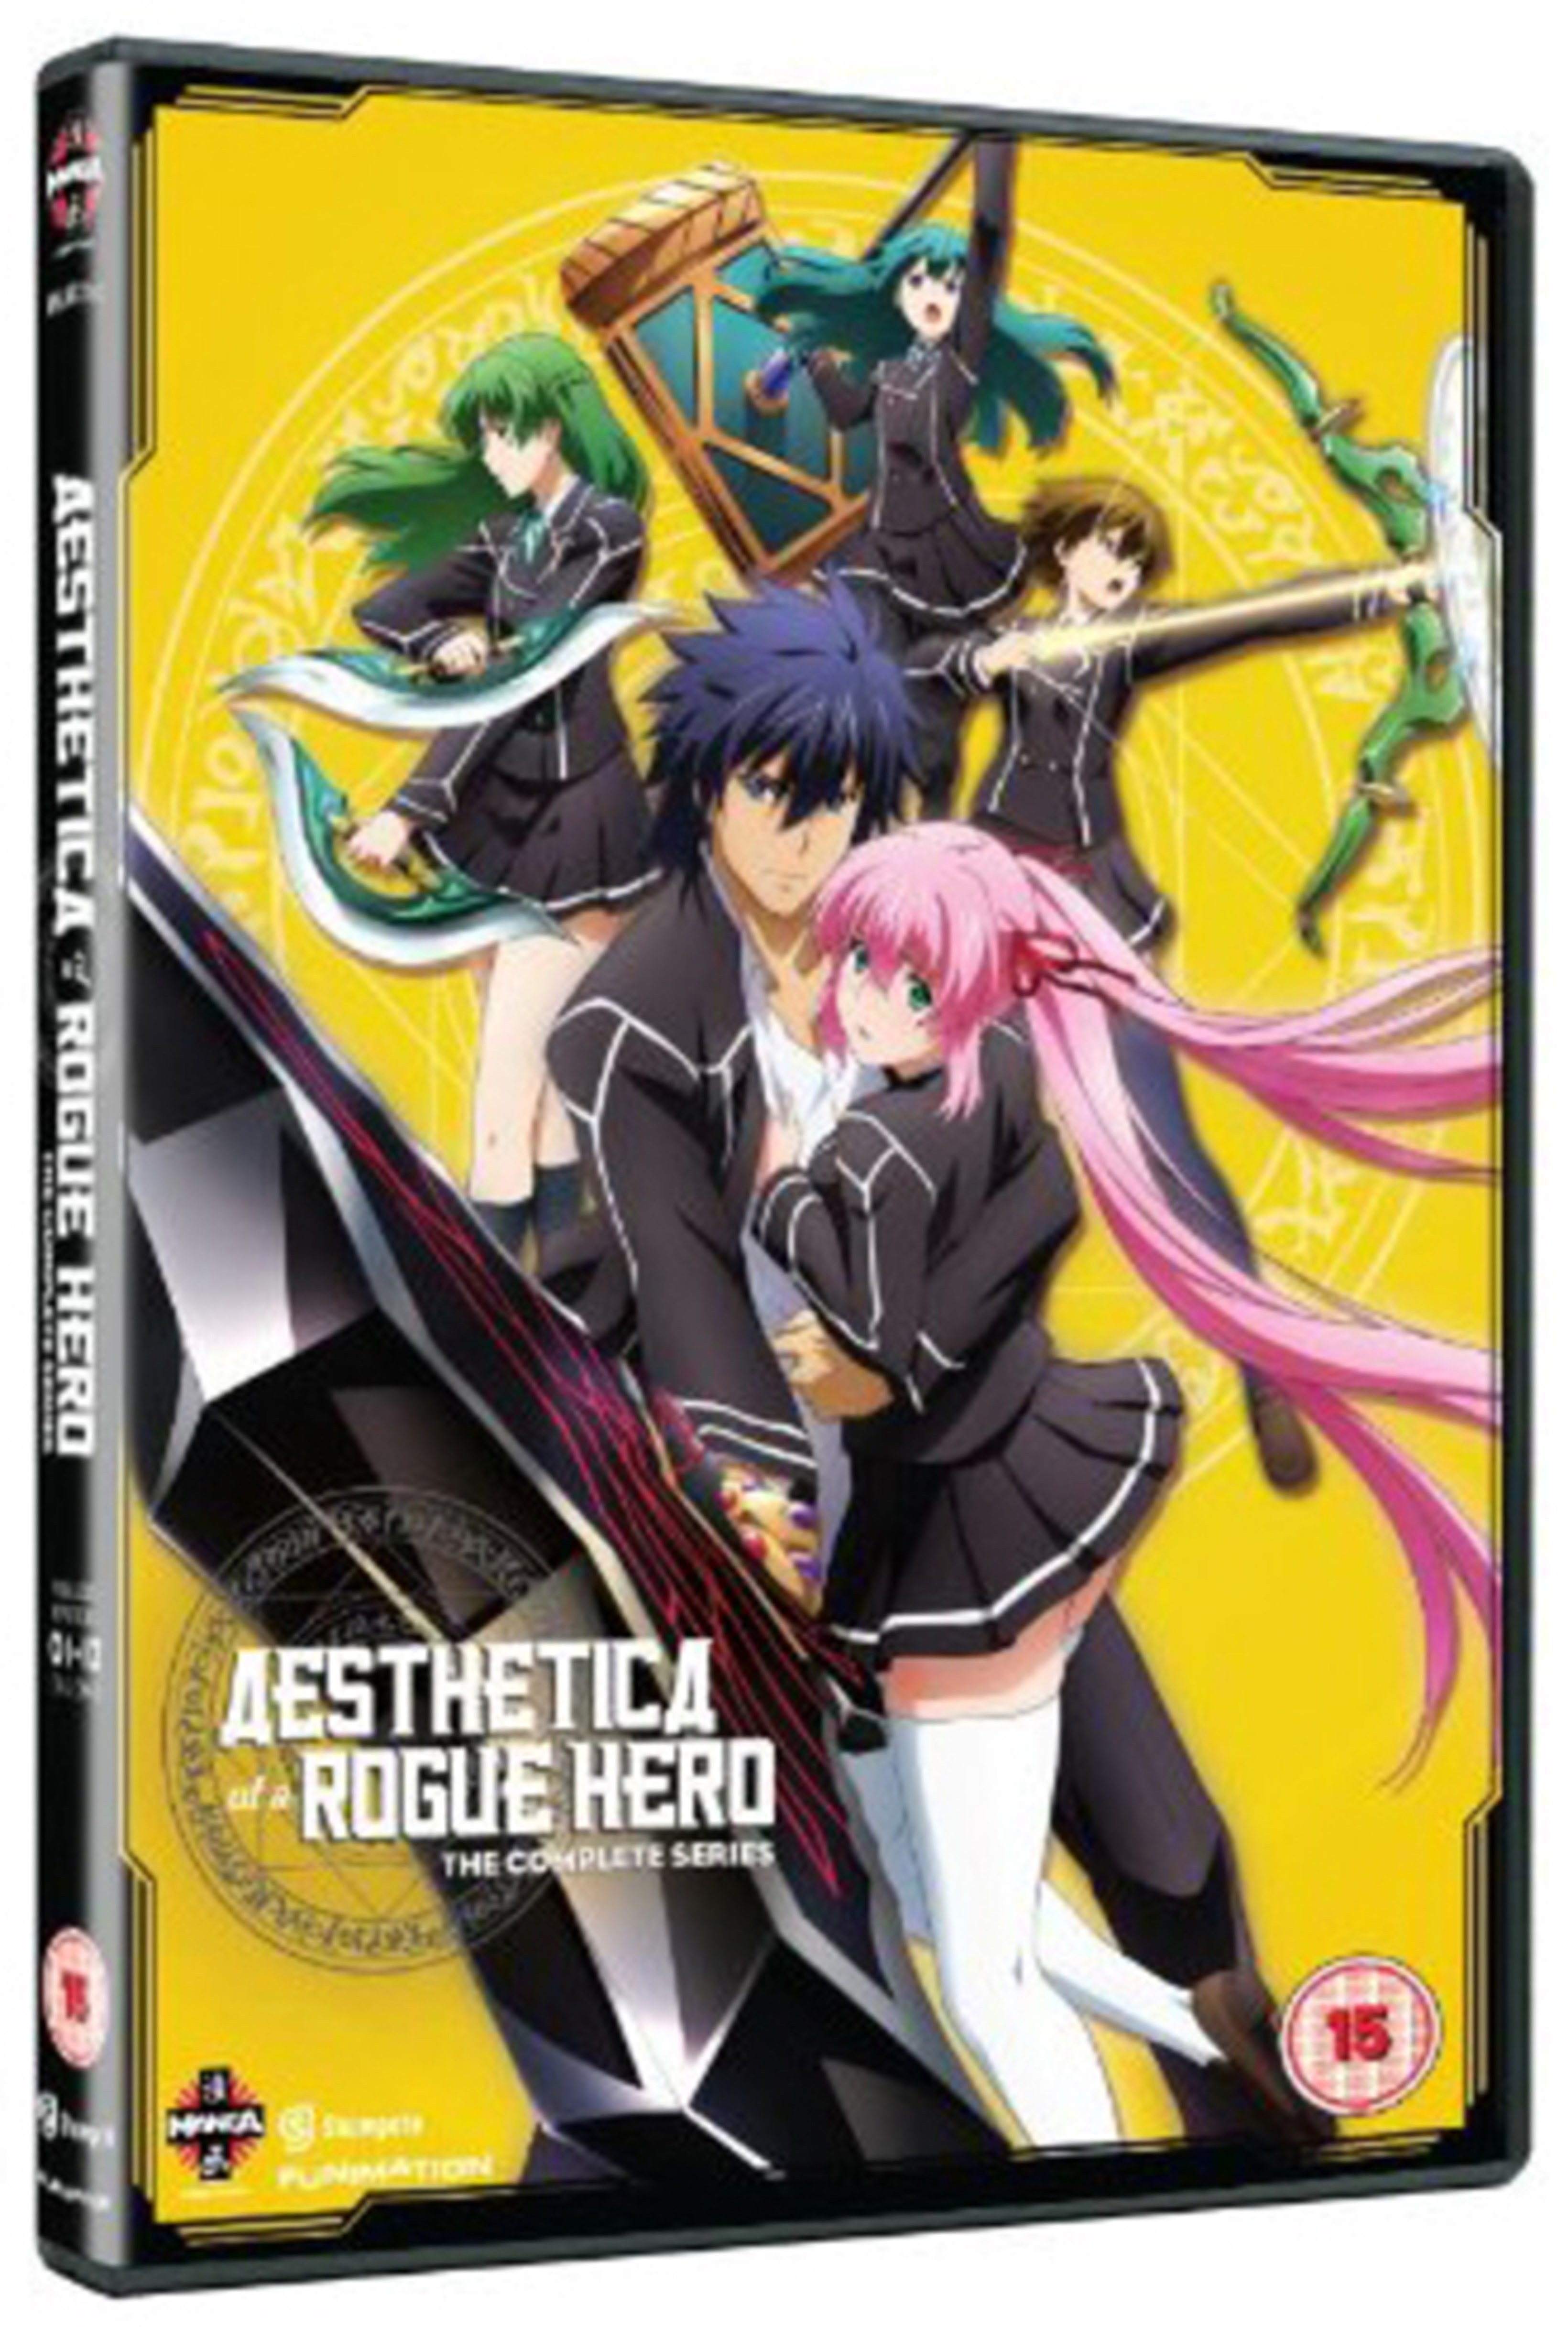 Aesthetica of a Rogue Hero: The Complete Series - 1